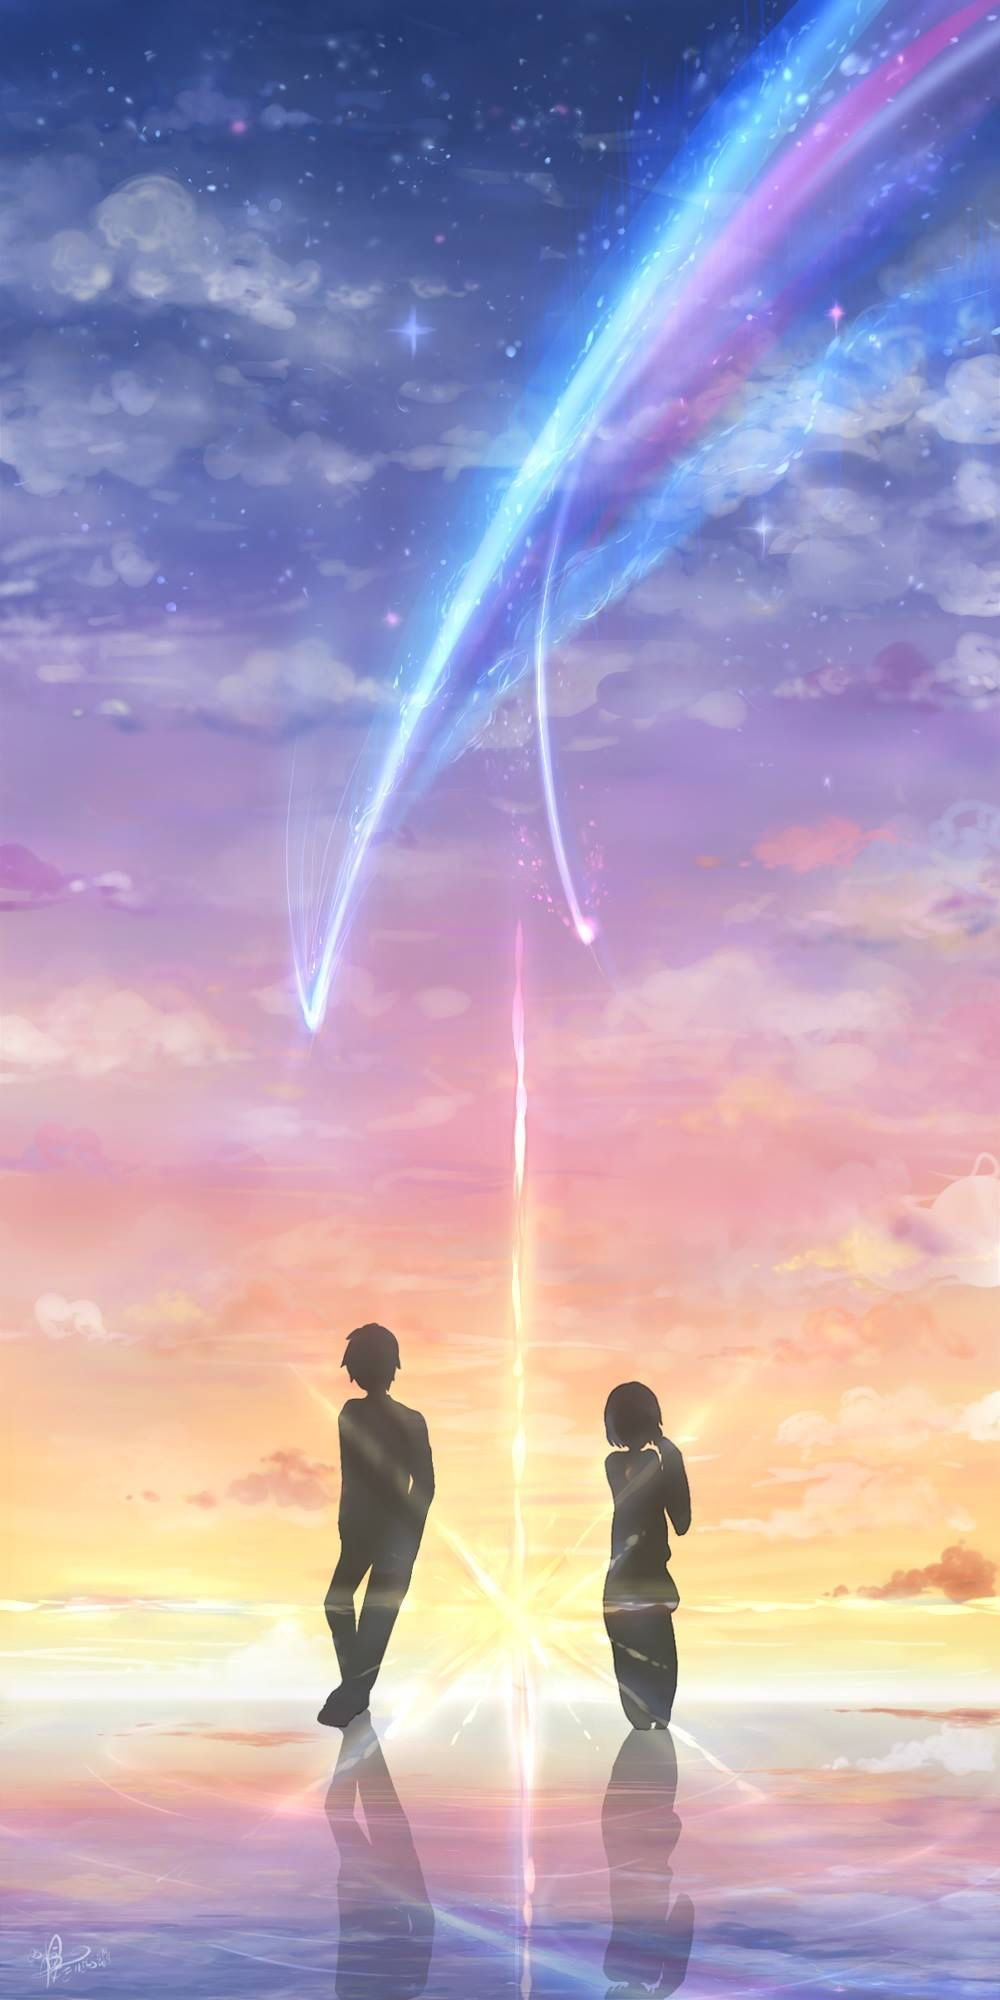 Kimi no nawa! Animes wallpapers, Anime e Anime de romance